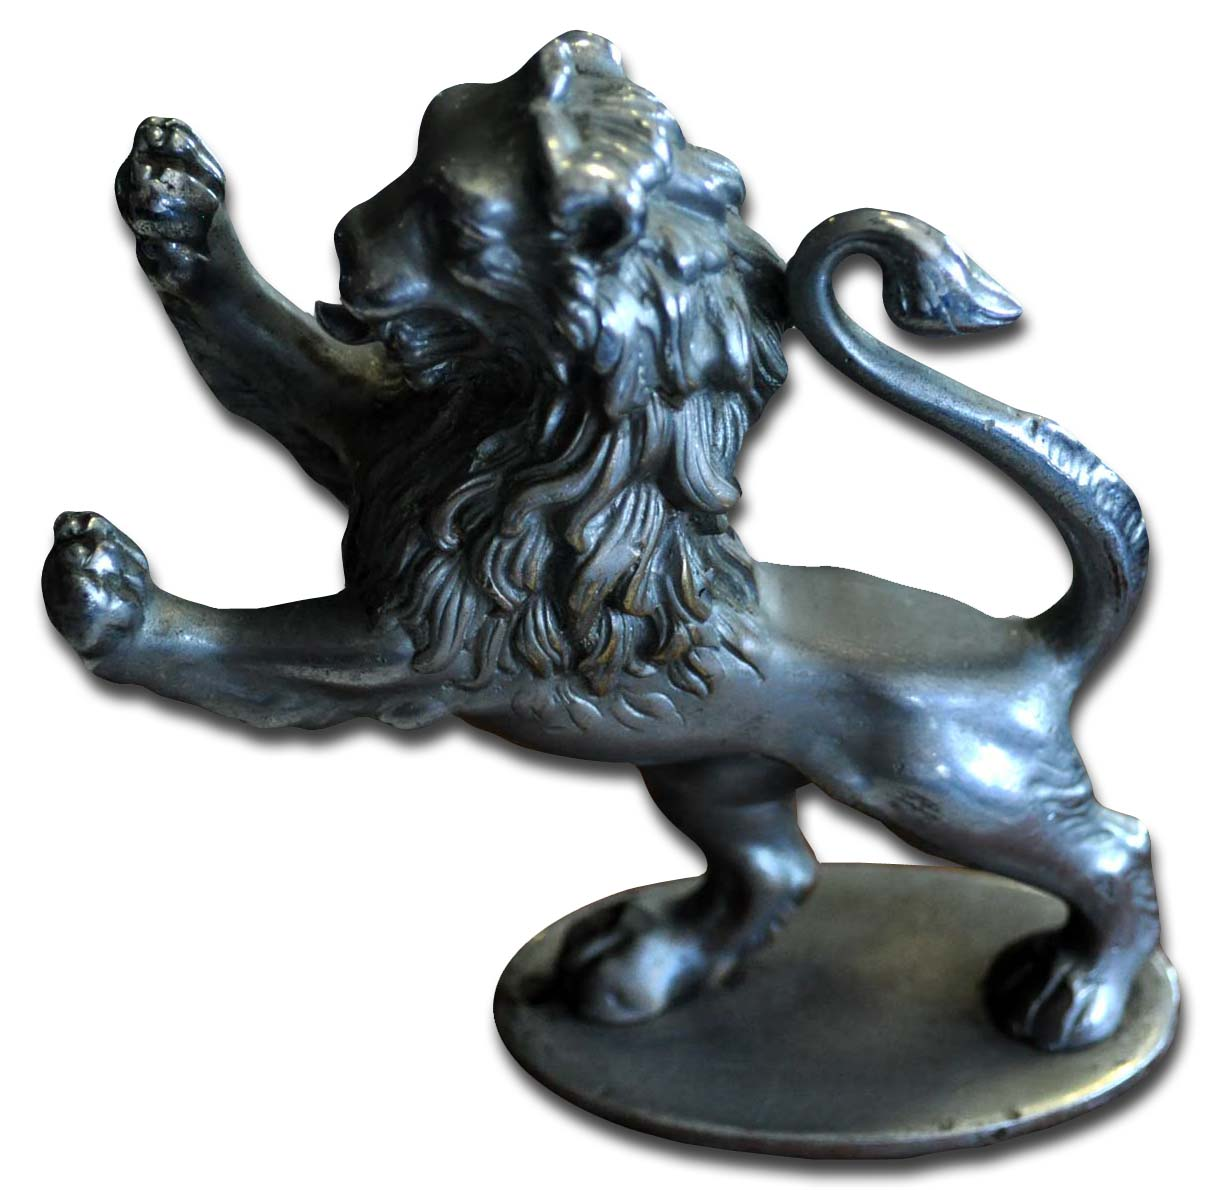 Argyll Motors Ltd. (1914 hood ornament)